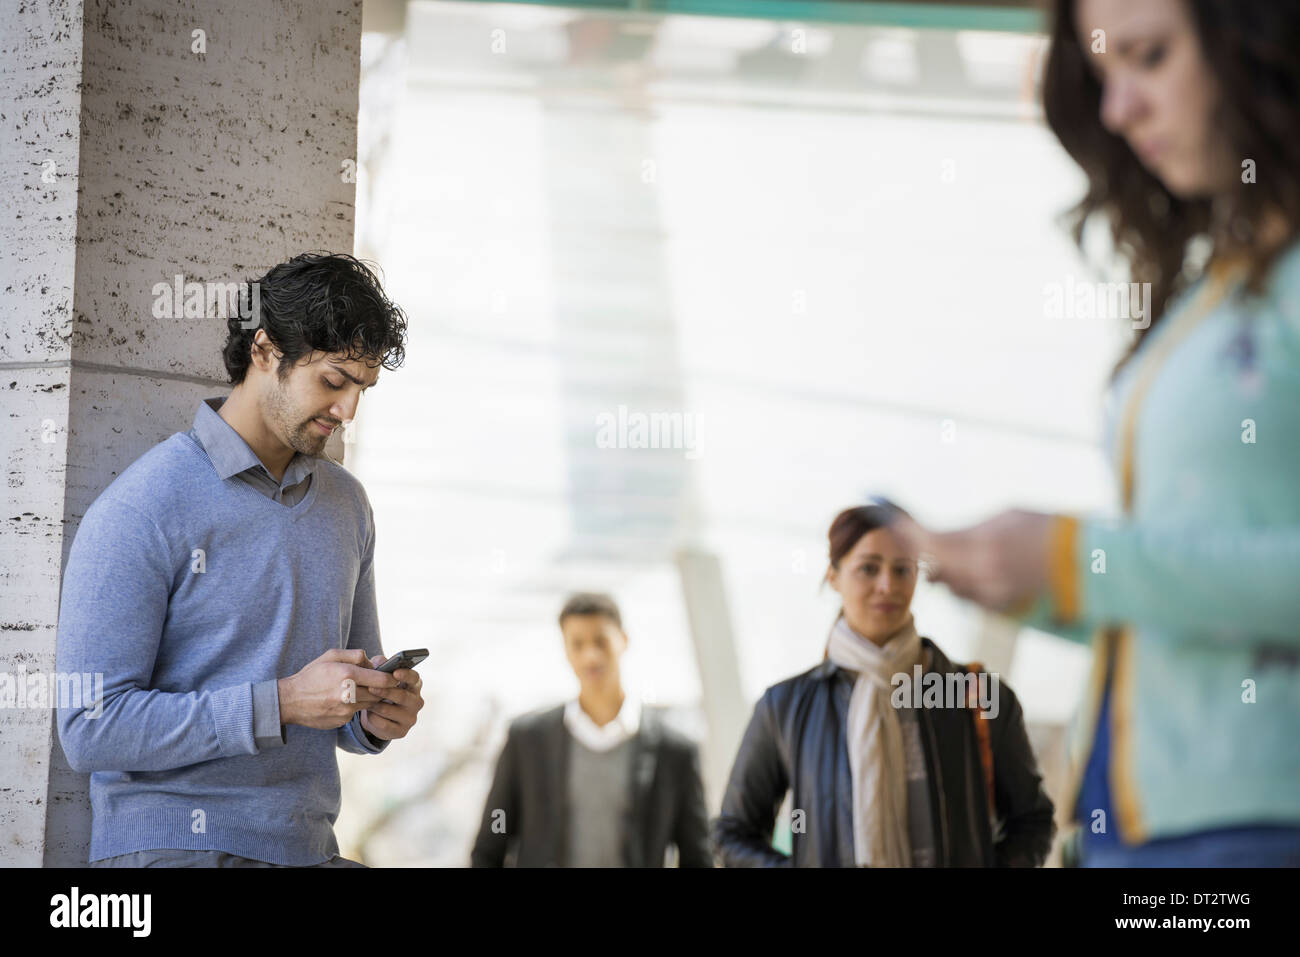 Three people on the sidewalk a man and a young woman using their mobile phones and two people walking on the sidewalk Stock Photo